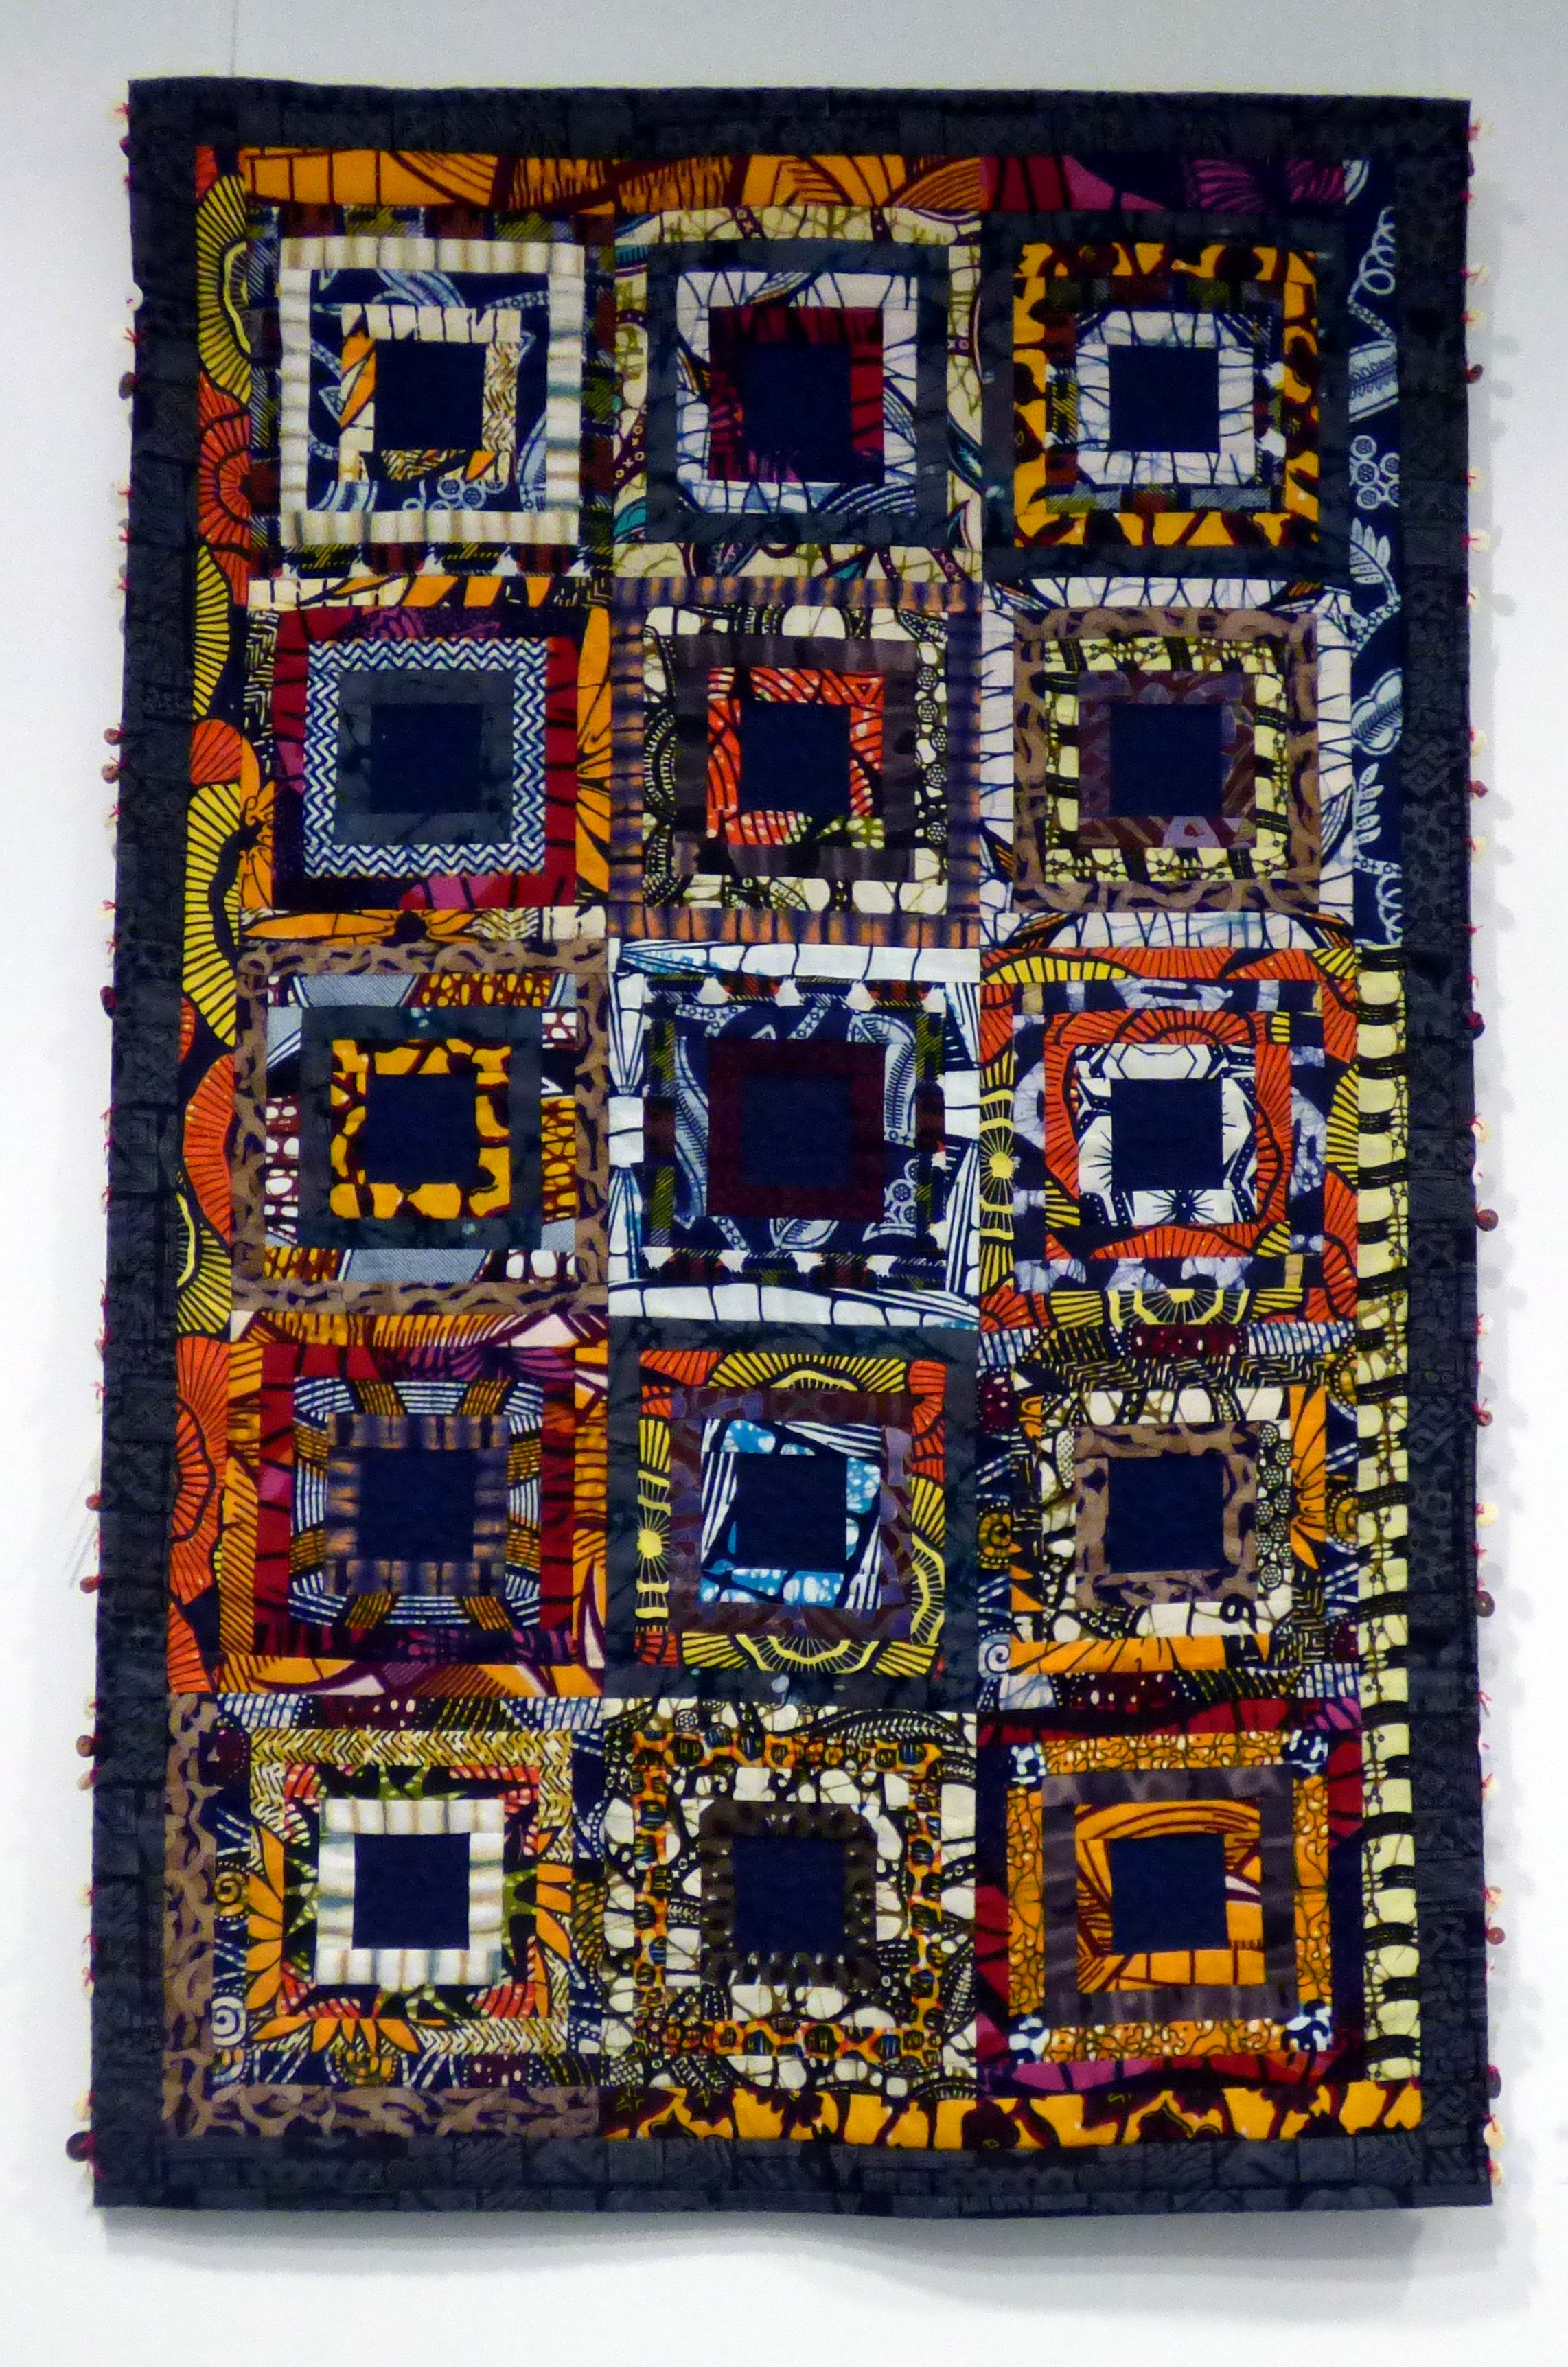 RICH PICKINGS by Sylvia Wood, quilted hanging, Ten Plus @ The Atkinson 2018